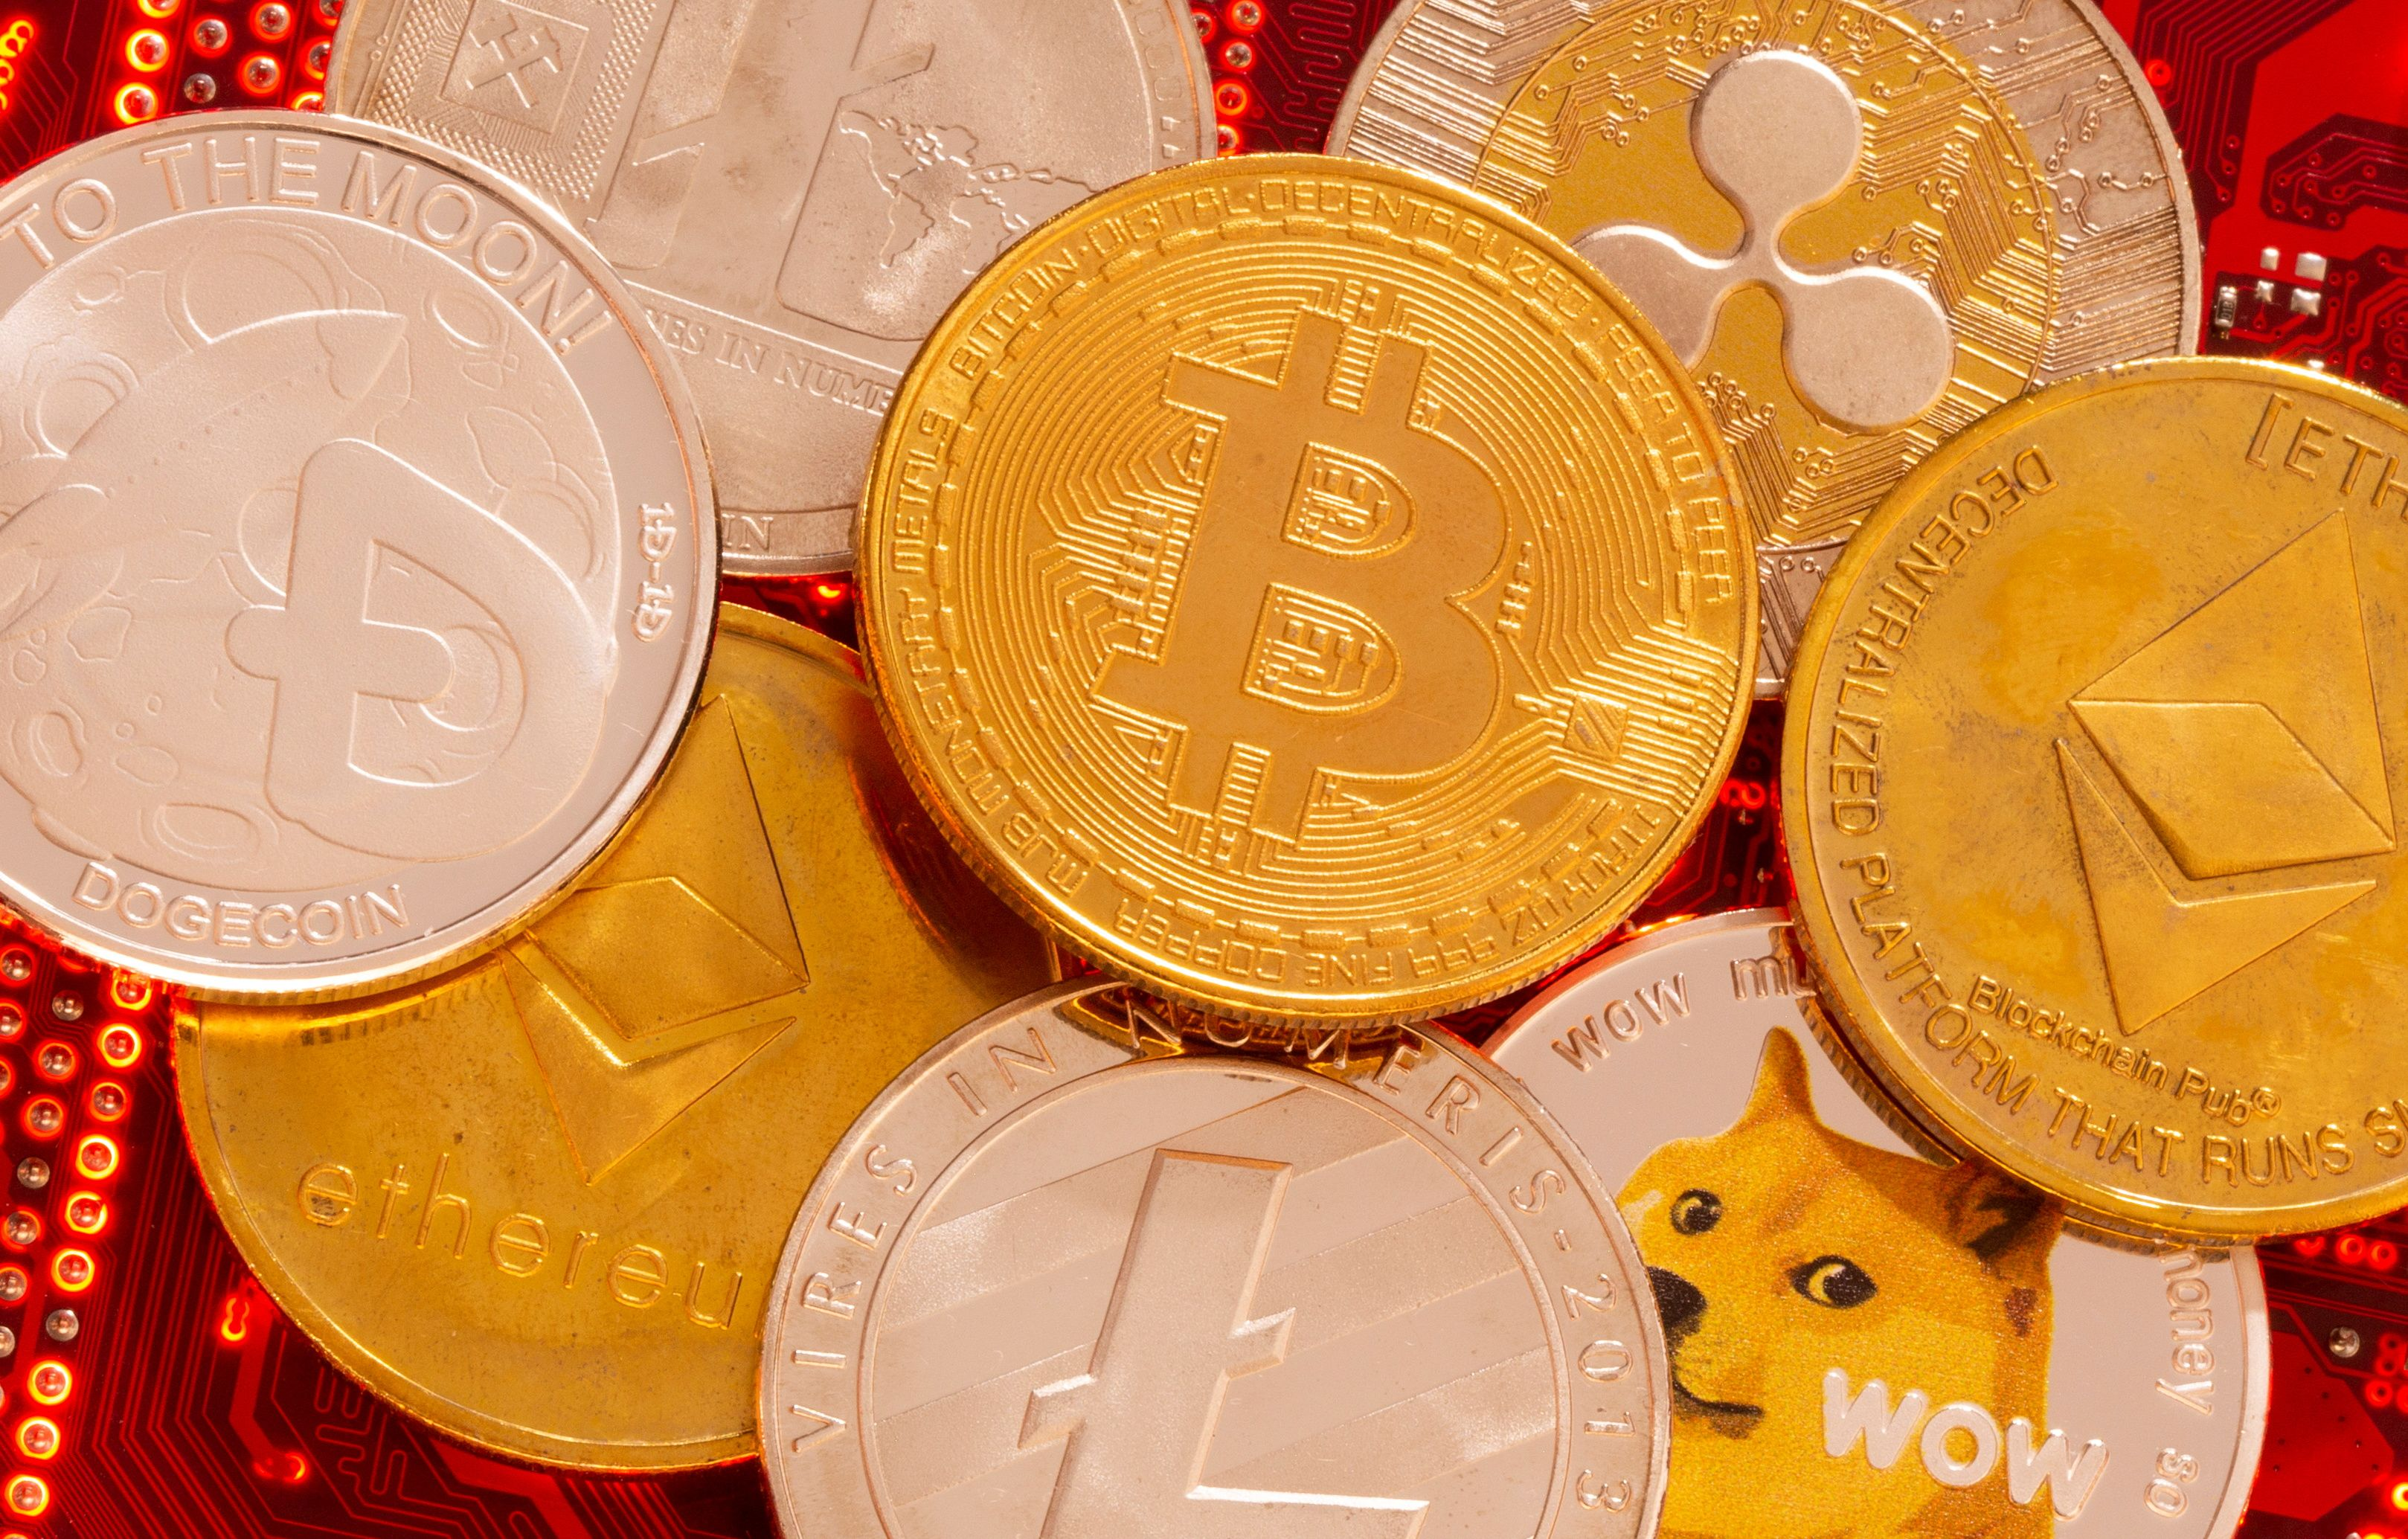 White House weighs broader oversight of cryptocurrency market | Reuters